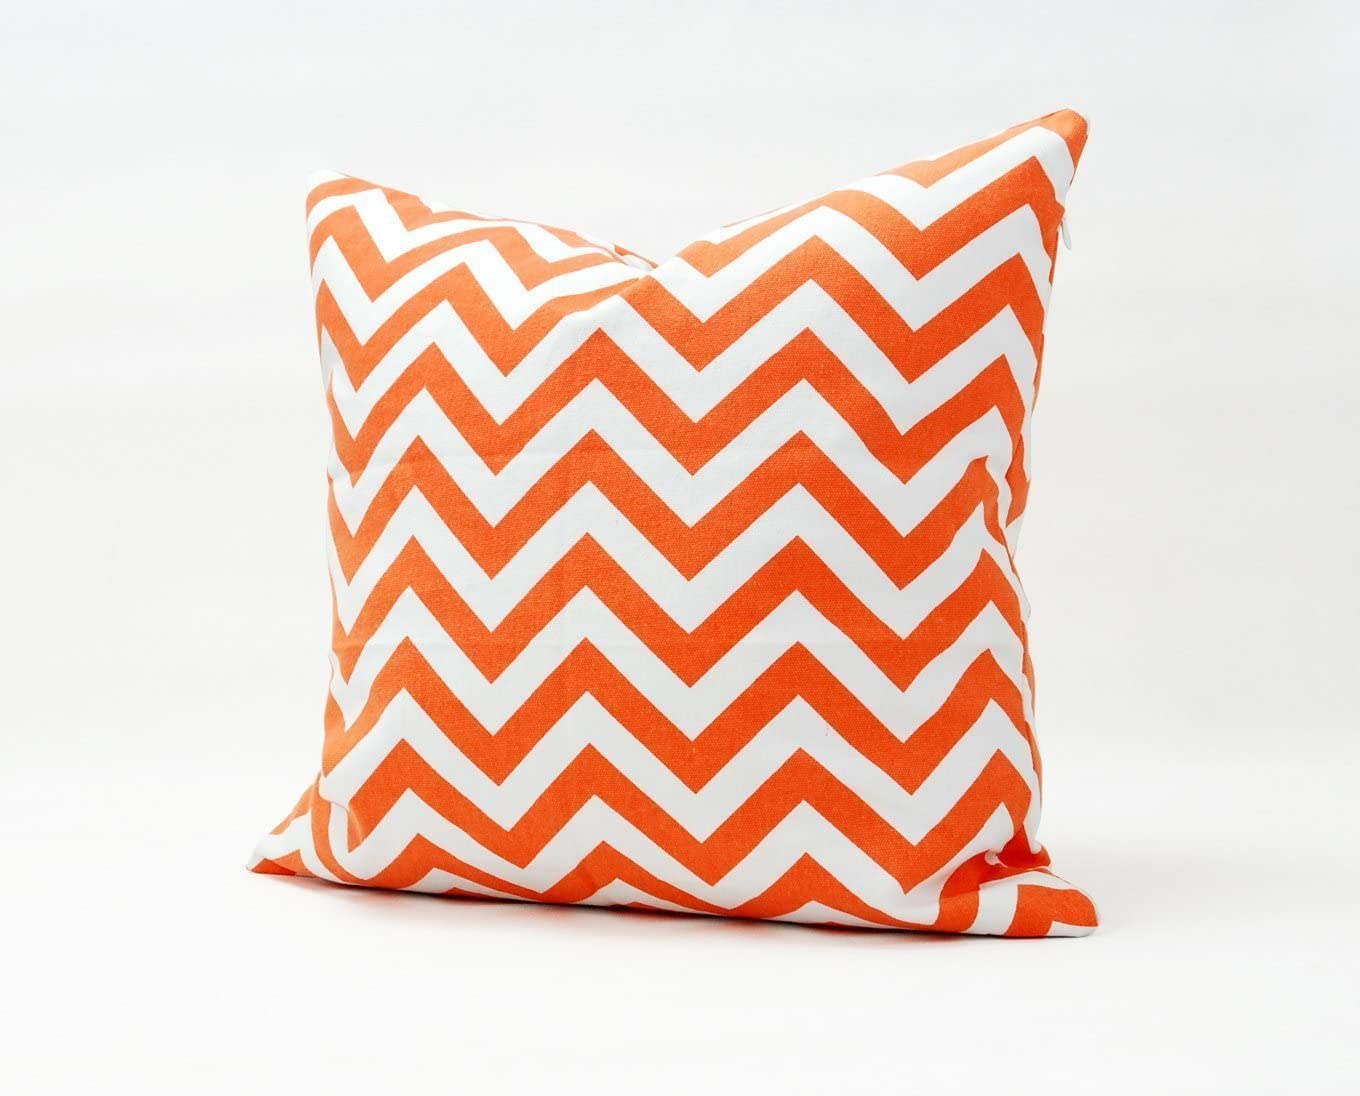 Sinoguo Home Decorative 16 18 20 Canvas Pillow Cover Case Orange White Zig Zag Printed Throw Pillows Cushion Case 18x18 Arts Crafts Sewing Amazon Com